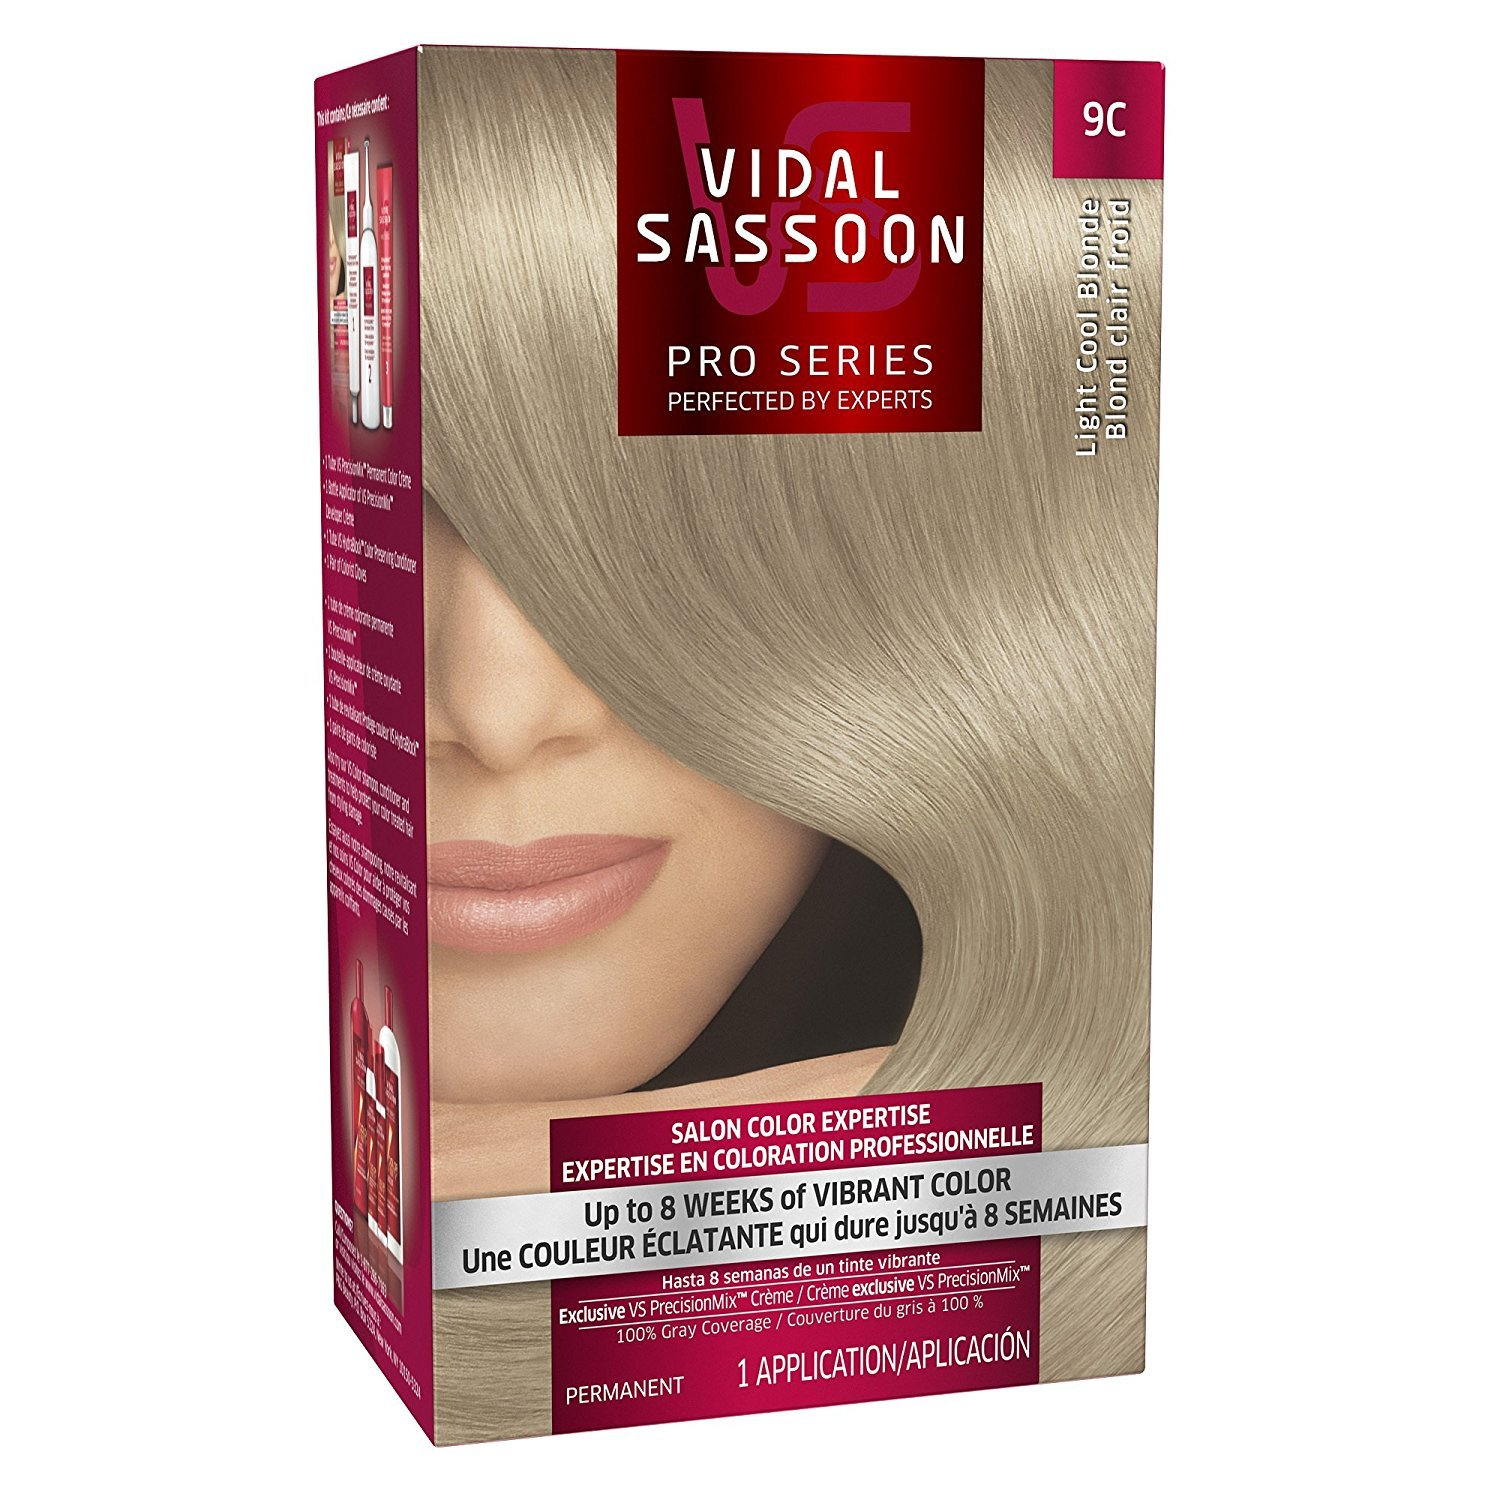 Vidal Sassoon Pro Series Hair Color 9c Light Cool Blonde 1 Kit by Vidal Sassoon